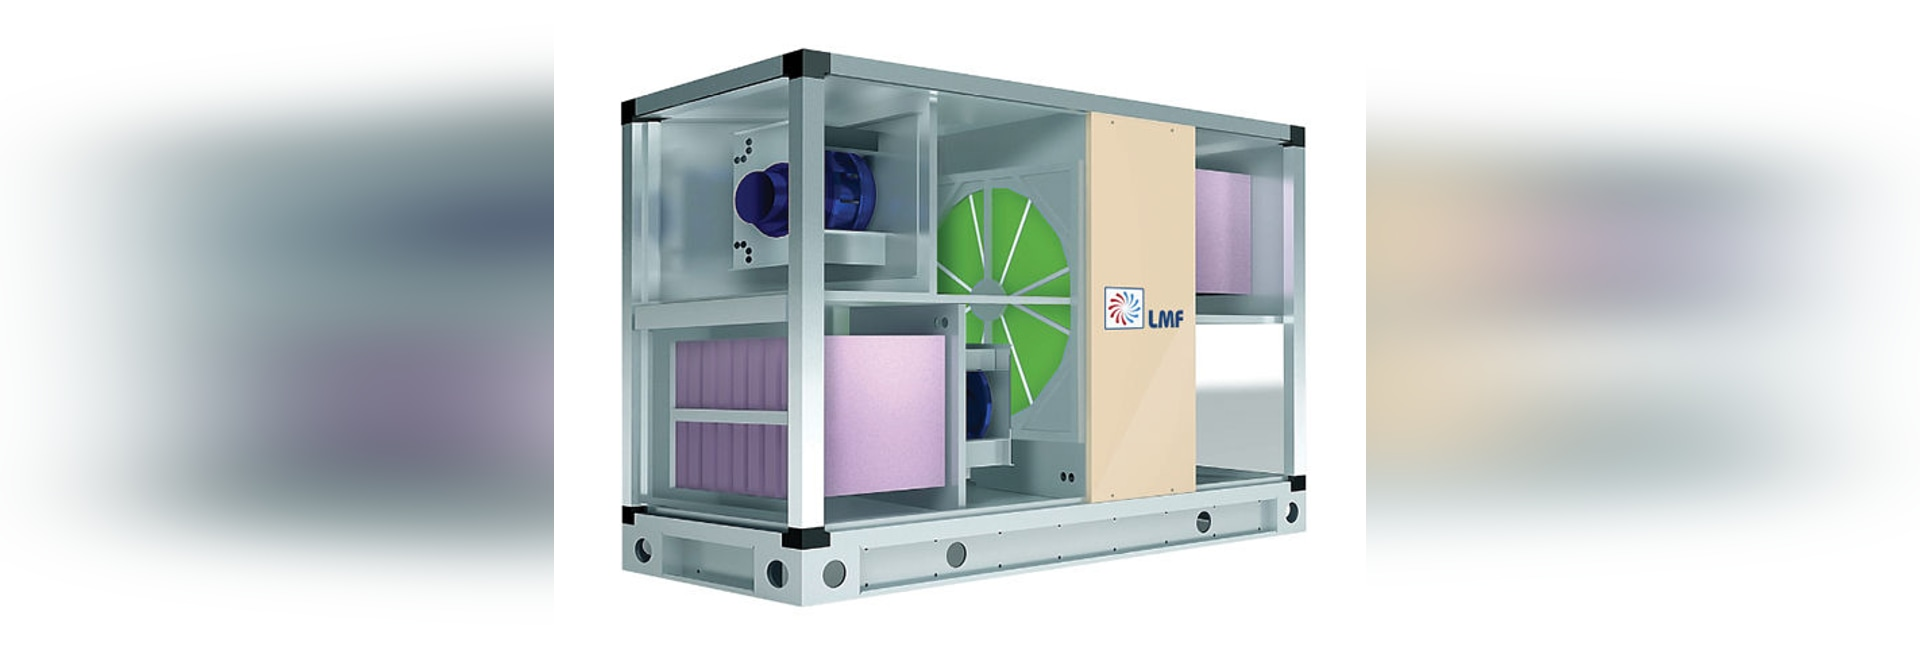 new: heat recovery unitlmf - lmf